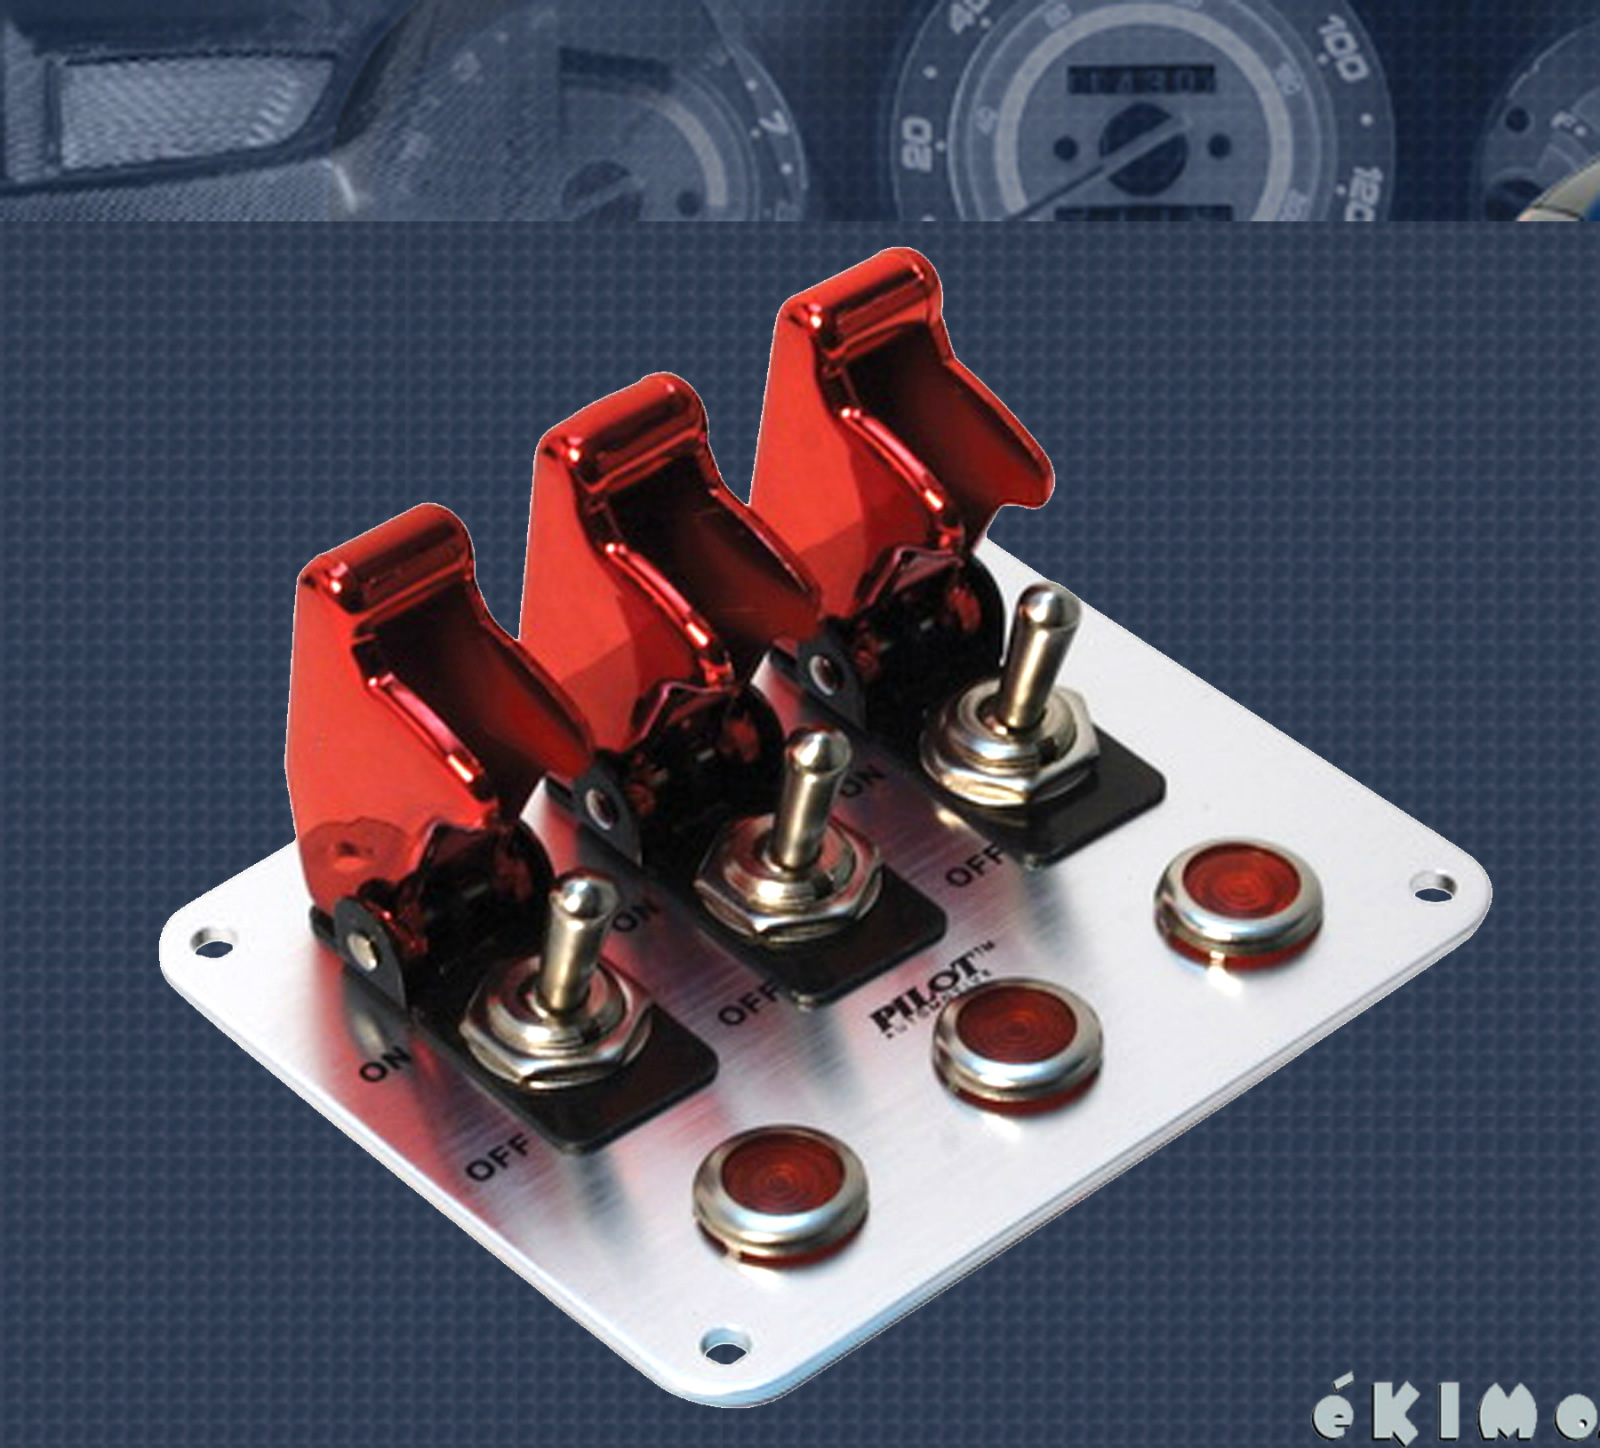 Details about Pilot 3 Row Red Anodized Safety Cover Aircraft Toggle Switch  Red Indicator Light